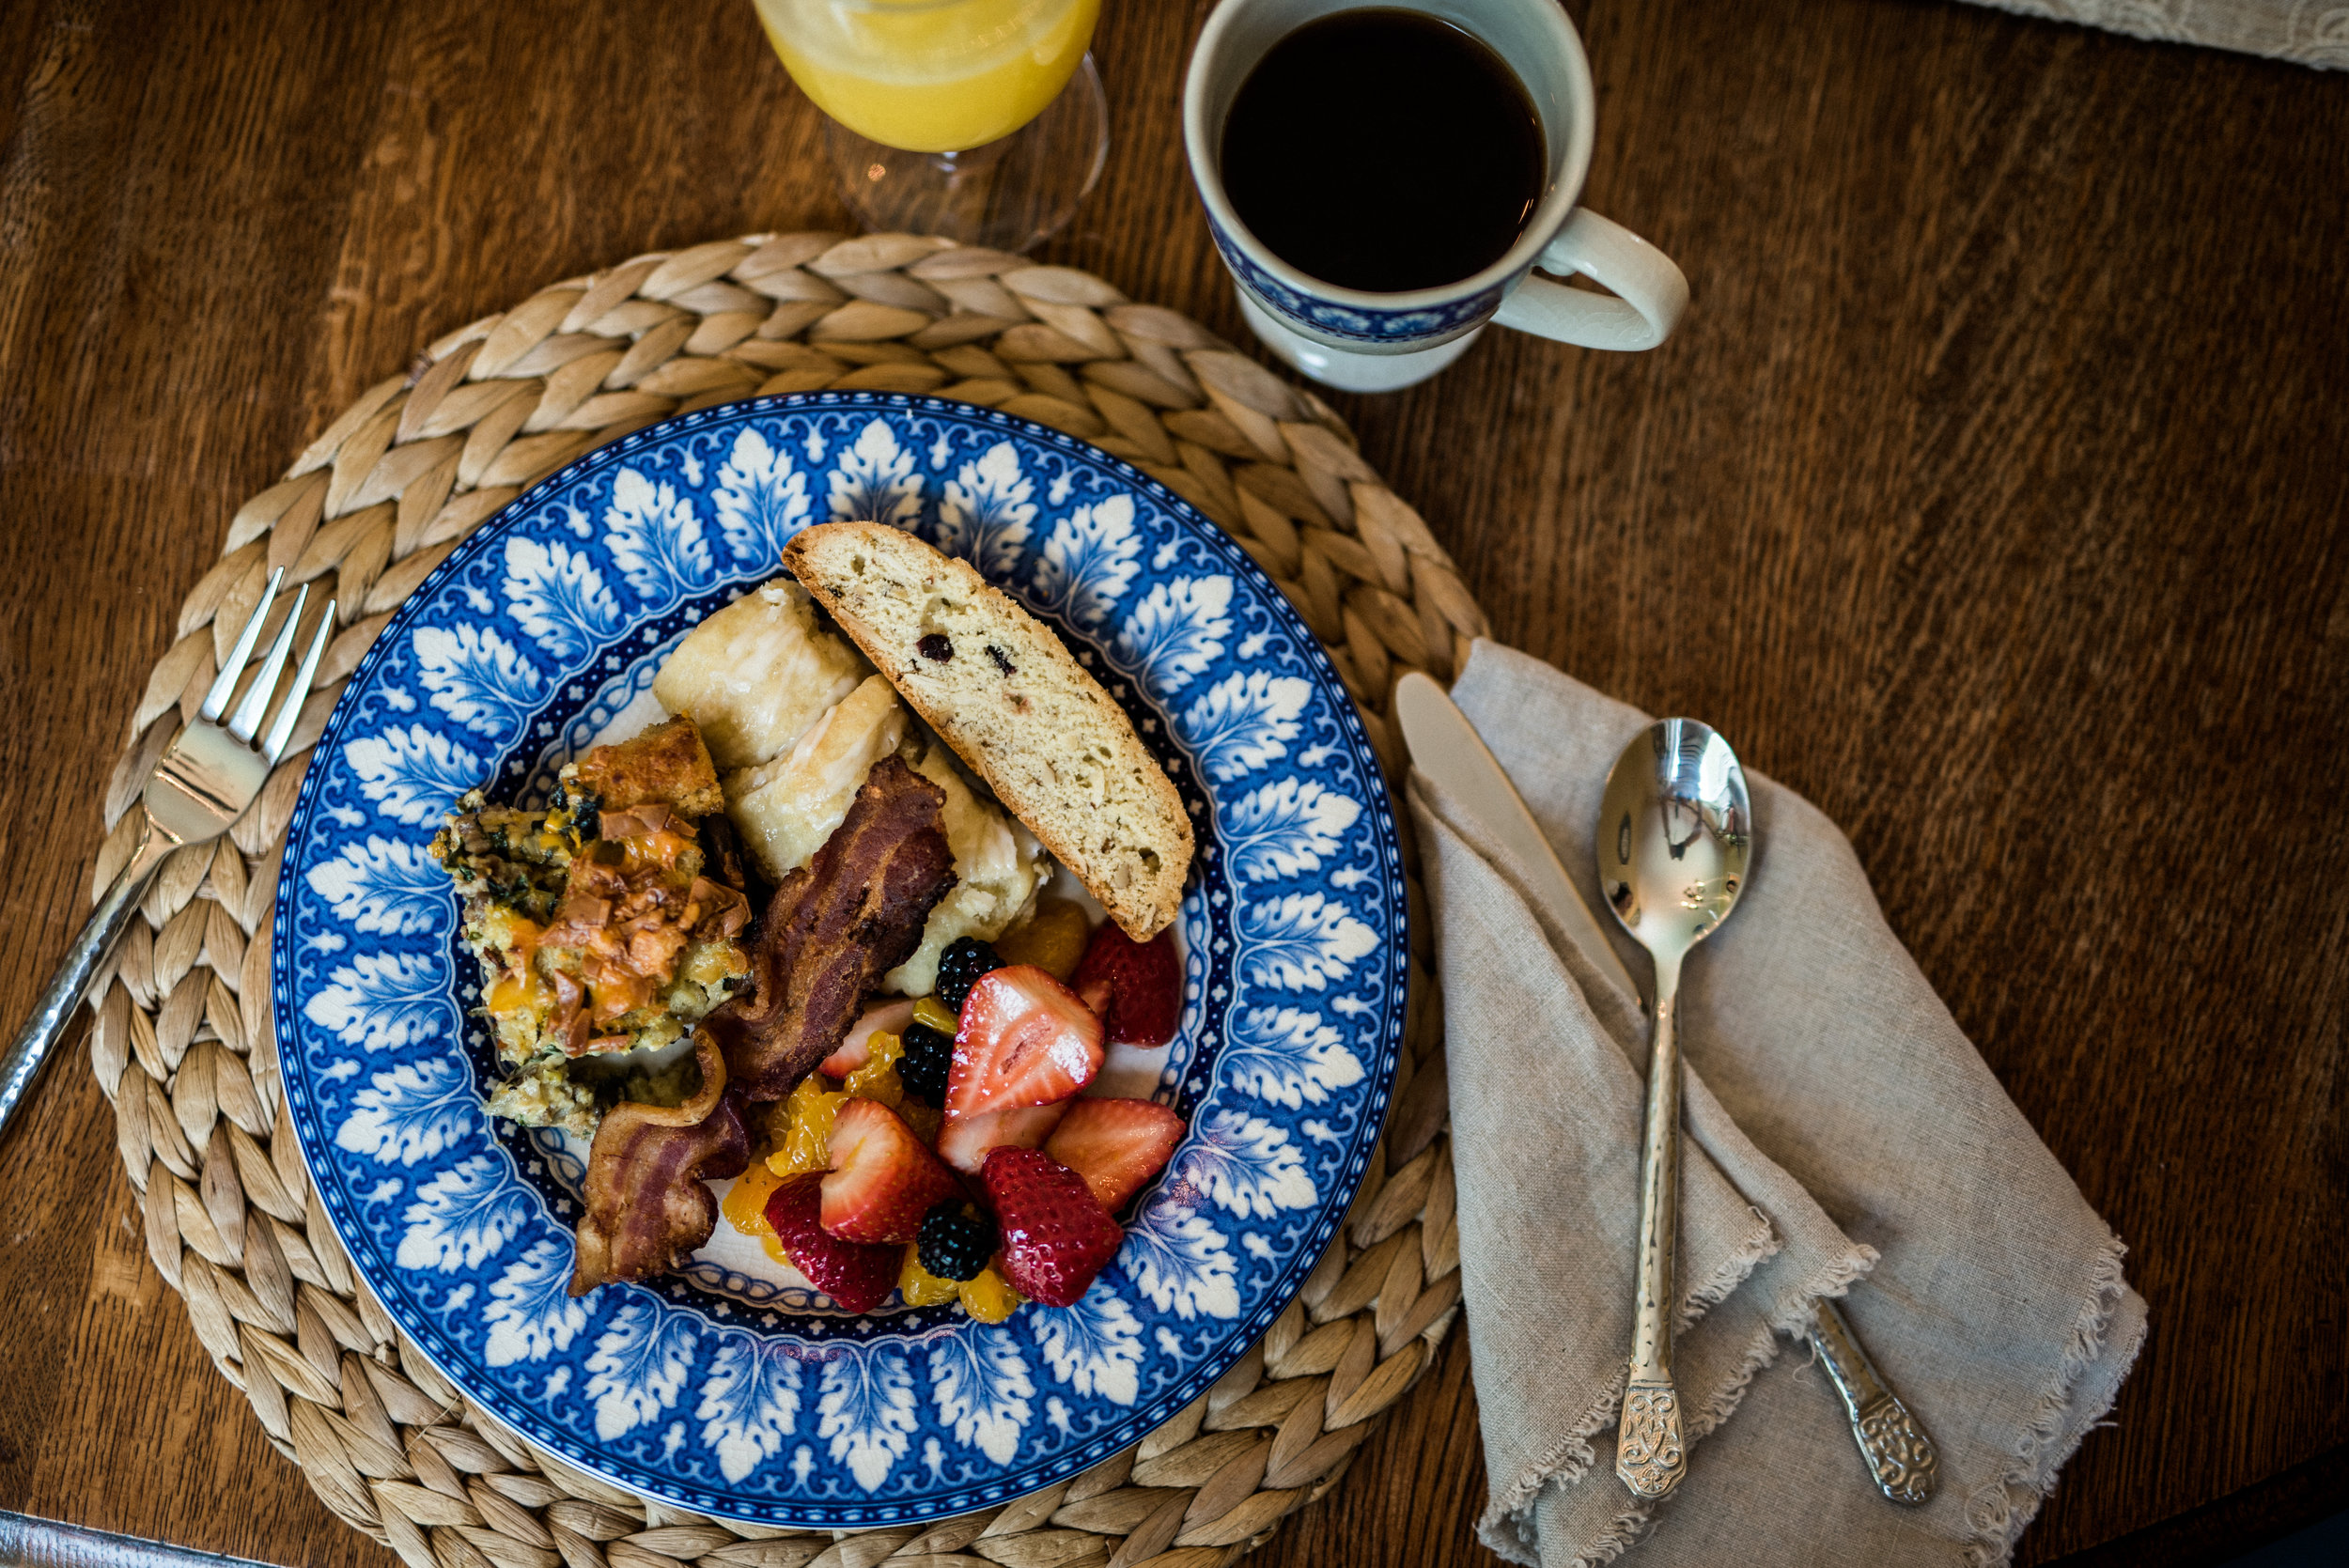 Birthday brunch with friends. Sausage swiss chard egg casserole, bacon, fresh fruit & Yeast walnuts rolls and biscotti. The best part is that everyone brought a dish to share! Photo by Rachel Cuthbert Photography